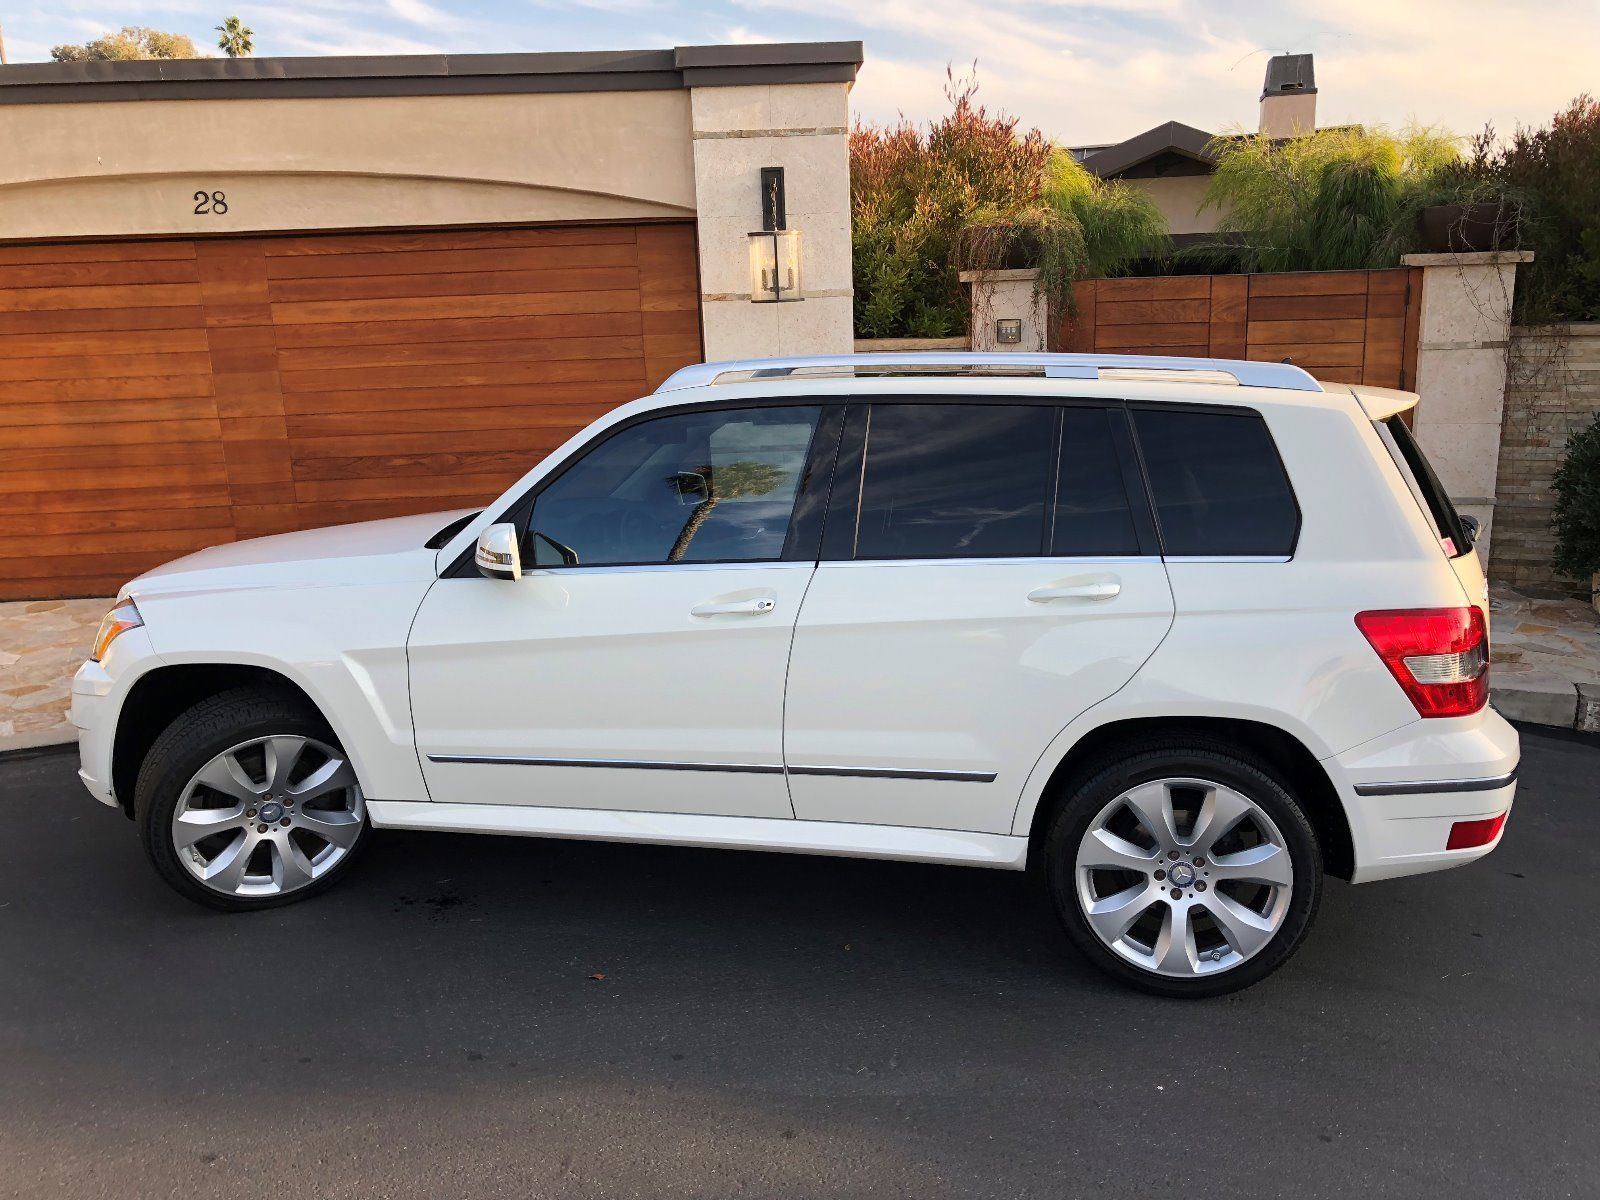 nice Awesome 2011 Mercedes-Benz GLK-Class Tan leather glk350 2017/2018 Check